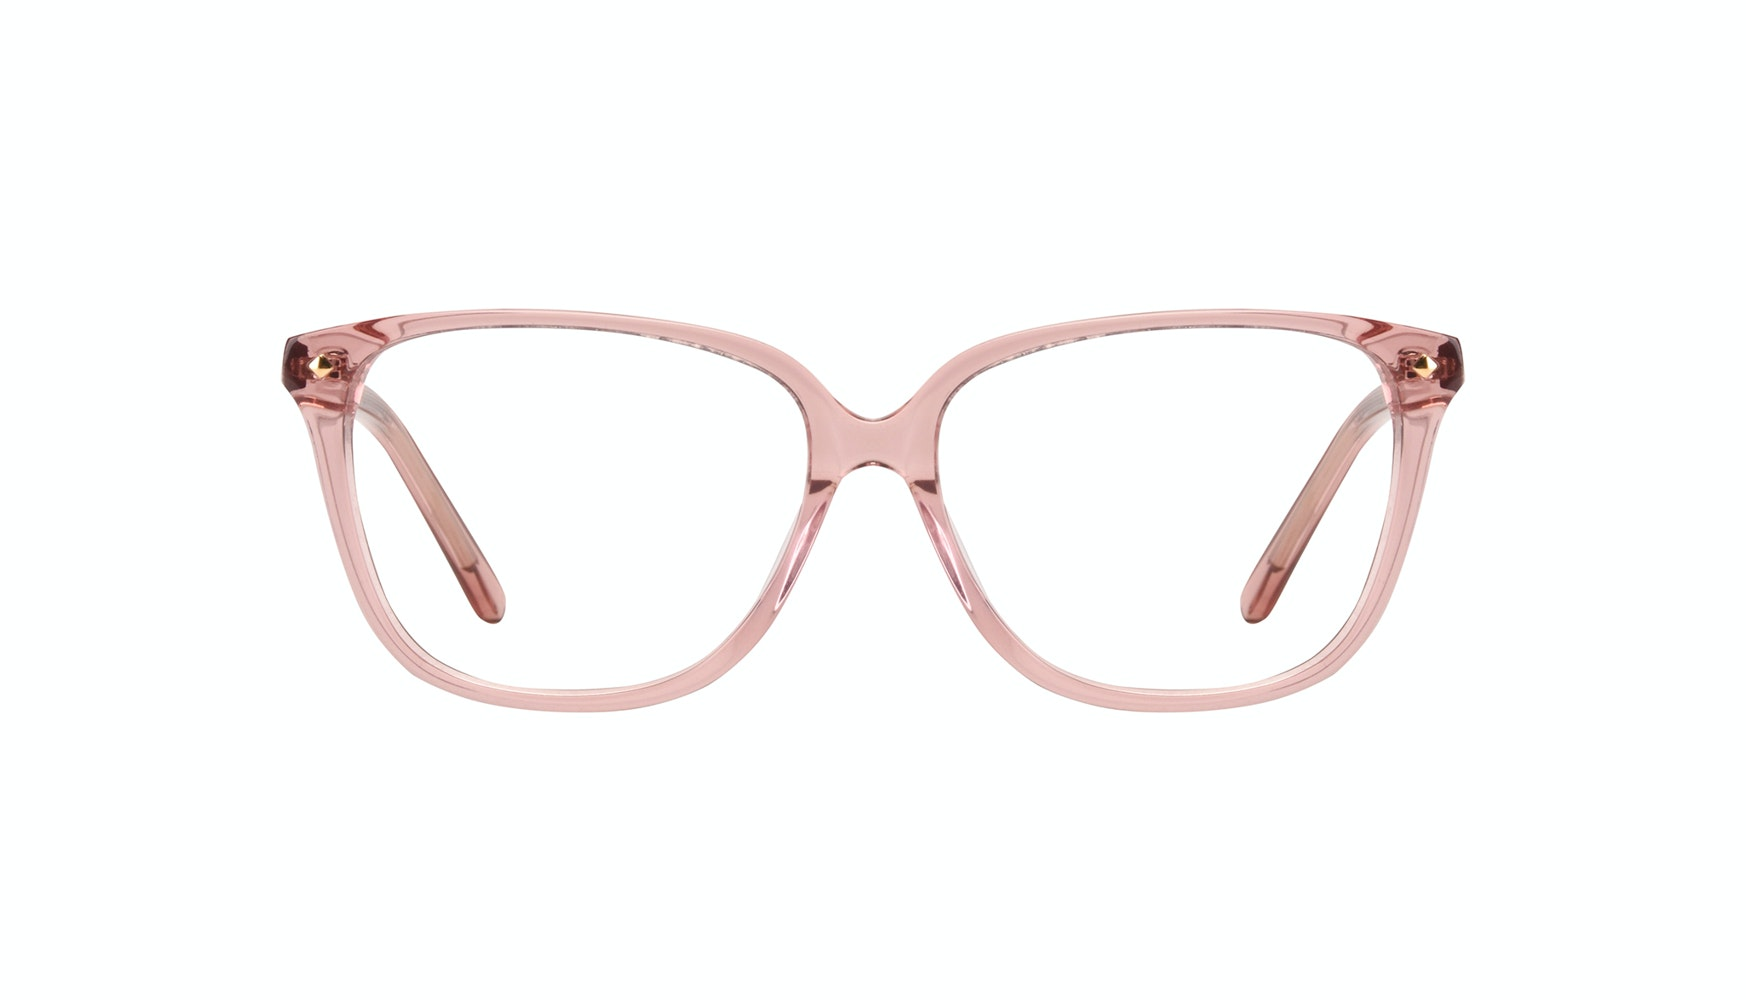 Affordable Fashion Glasses Rectangle Square Eyeglasses Women Muse Rose